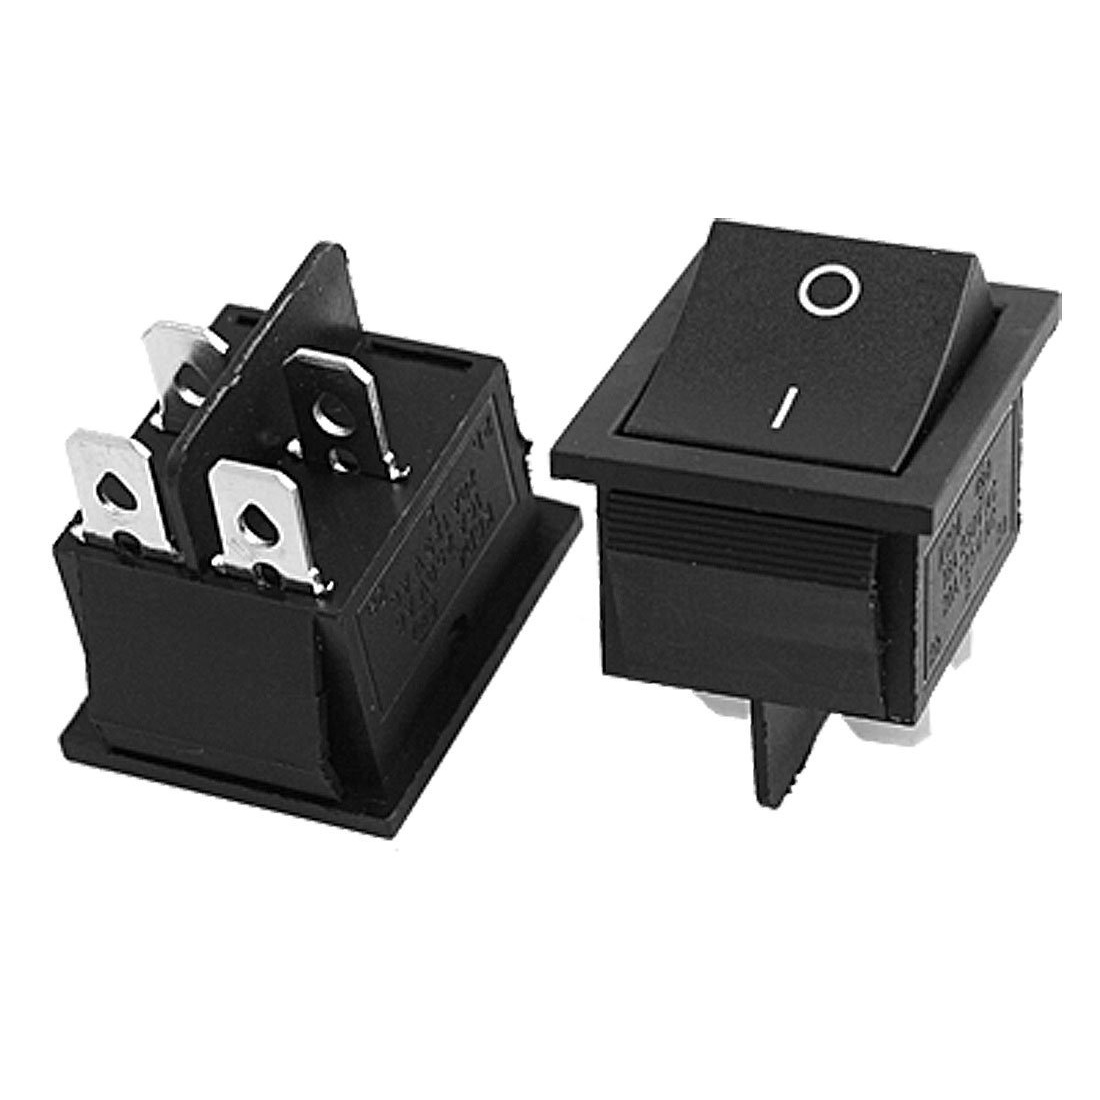 Switches Official Website Shgo Hot-2pcs Ac 16a/250v 20a/125v 4 Pin On-off 2 Position Dpst Snap In Boat Rocker Switch Lights & Lighting